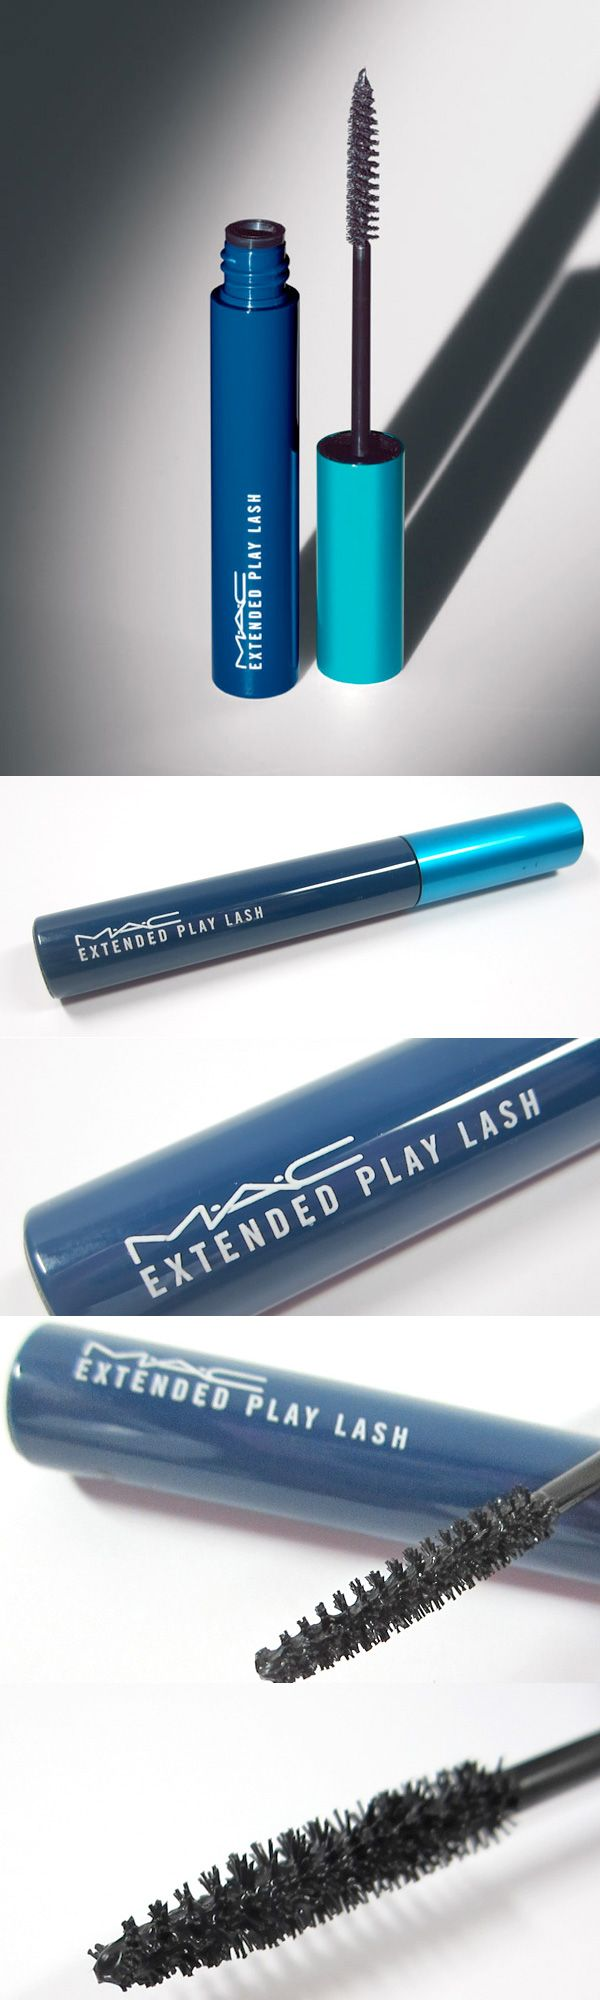 MAC Cosmetics Extended Play Lash: Review & Photos